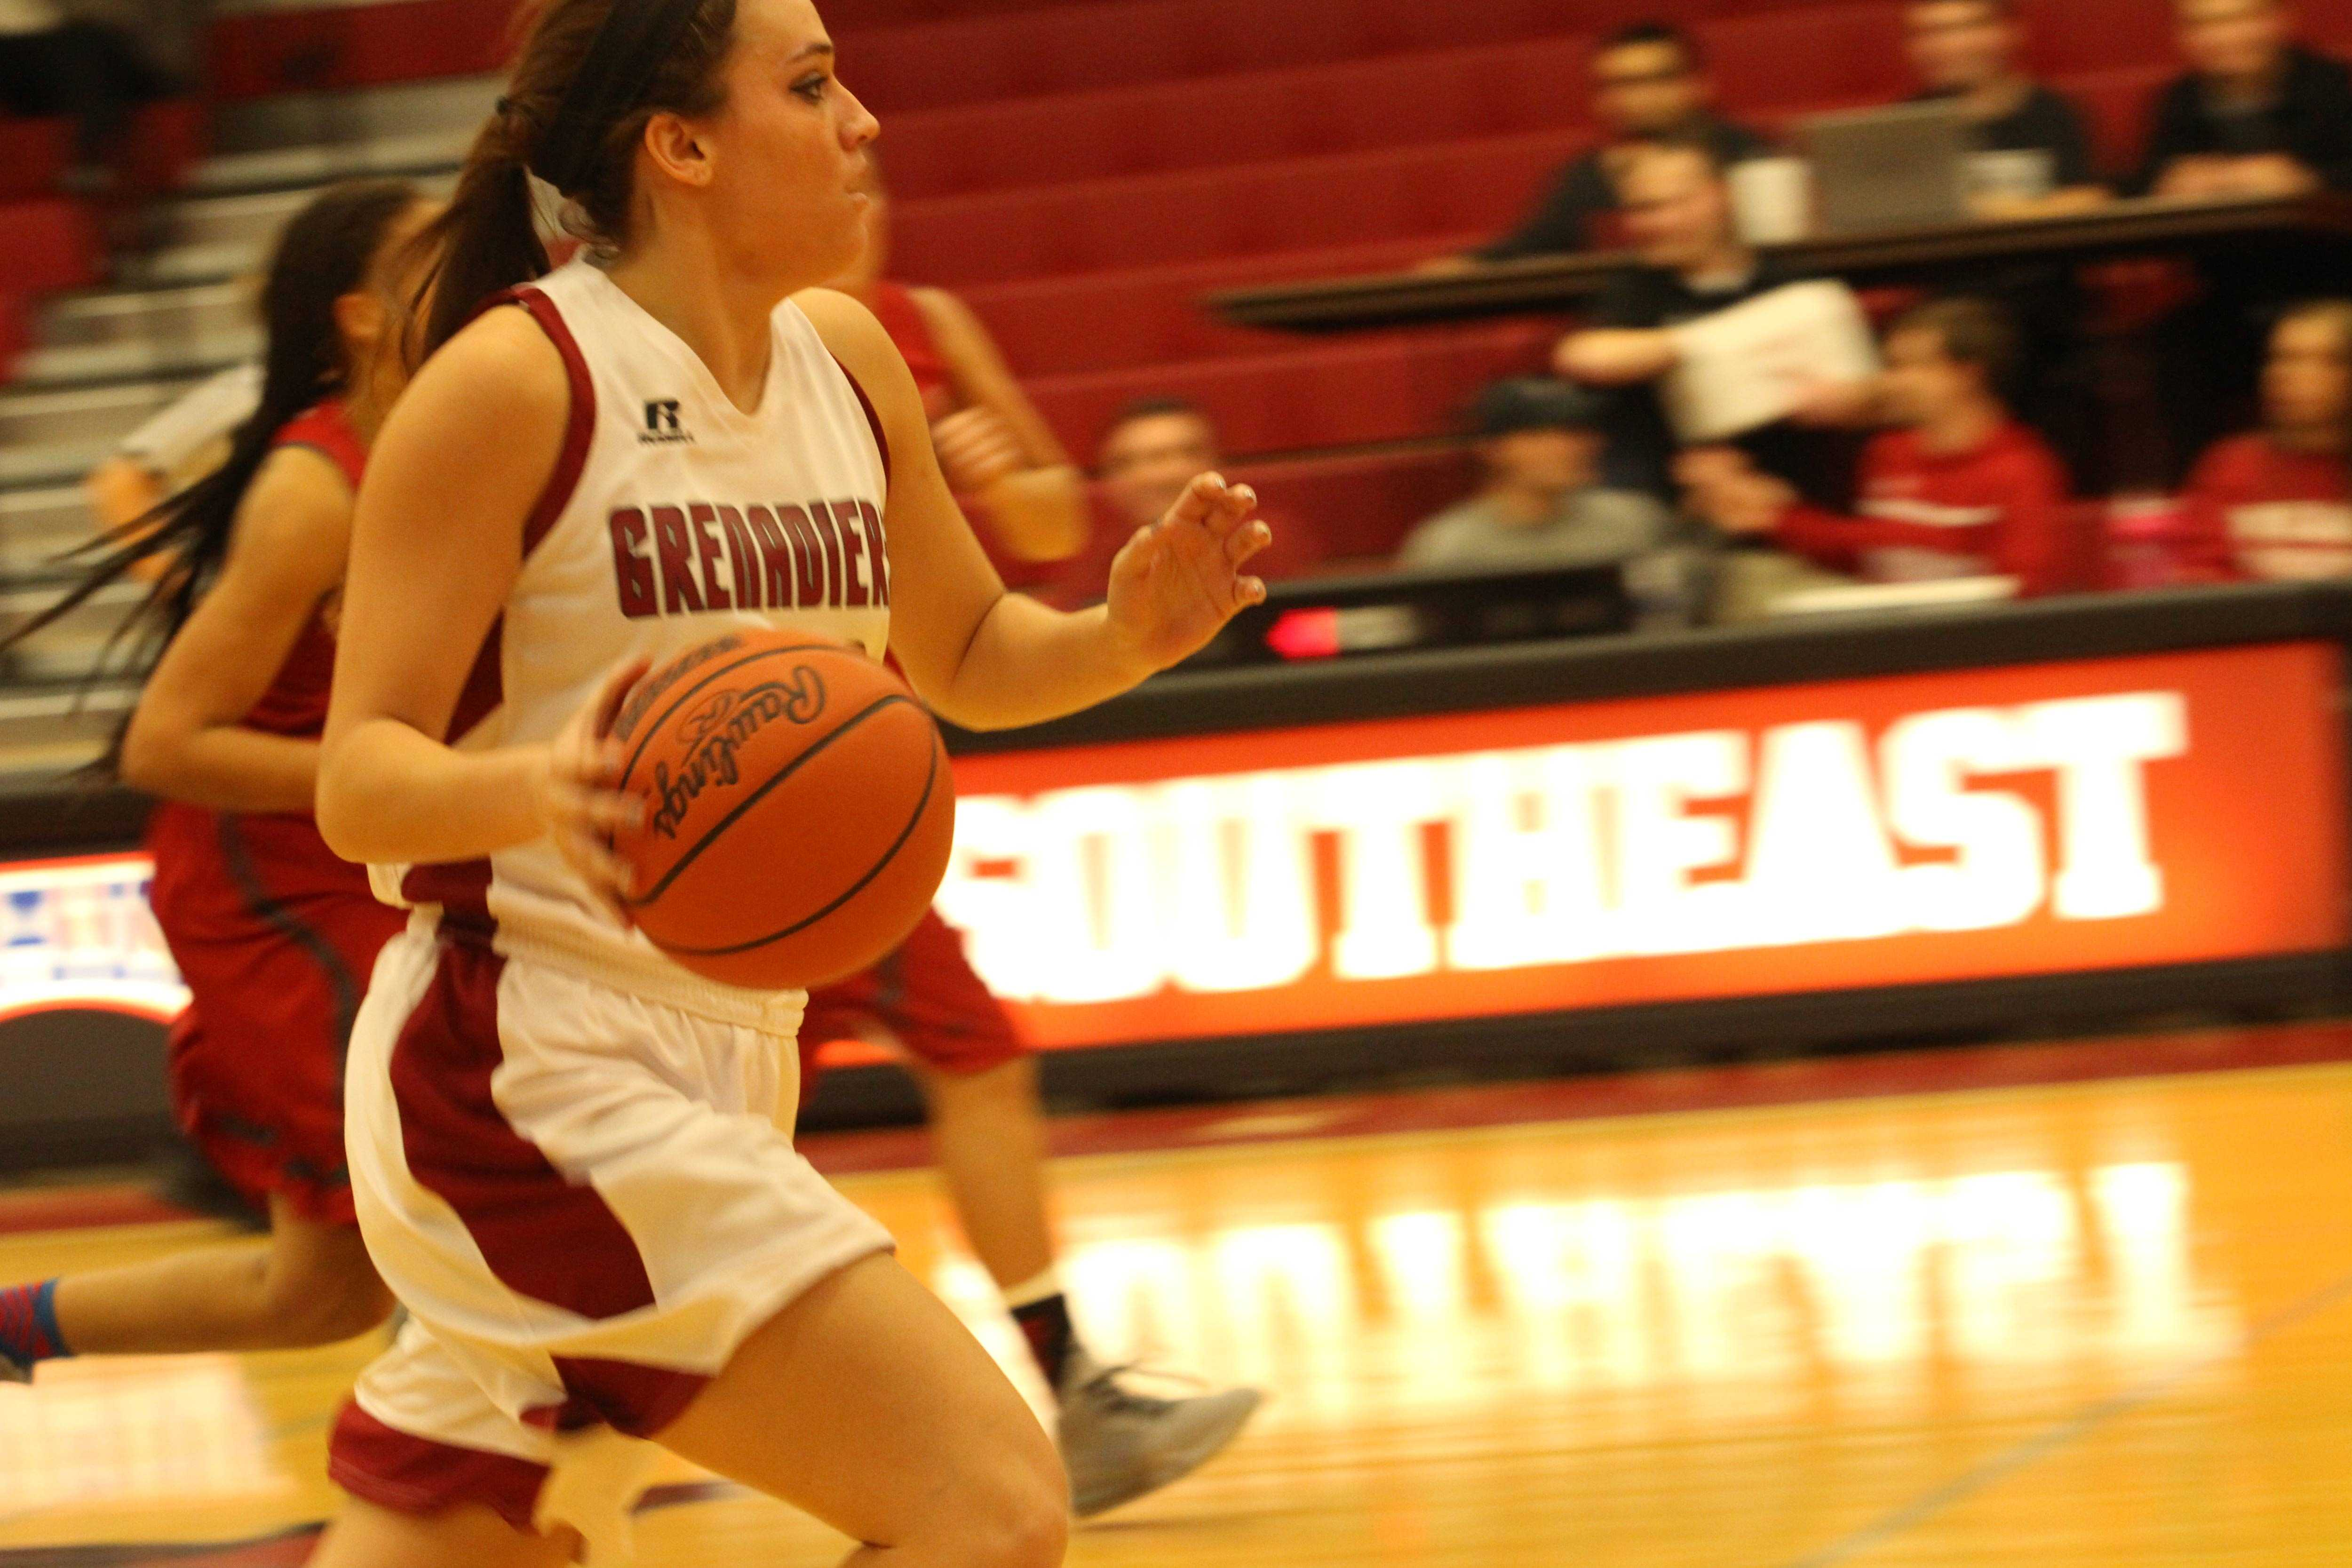 Junior forward Michaela Harris pushes the ball on a Grenadier fast break.